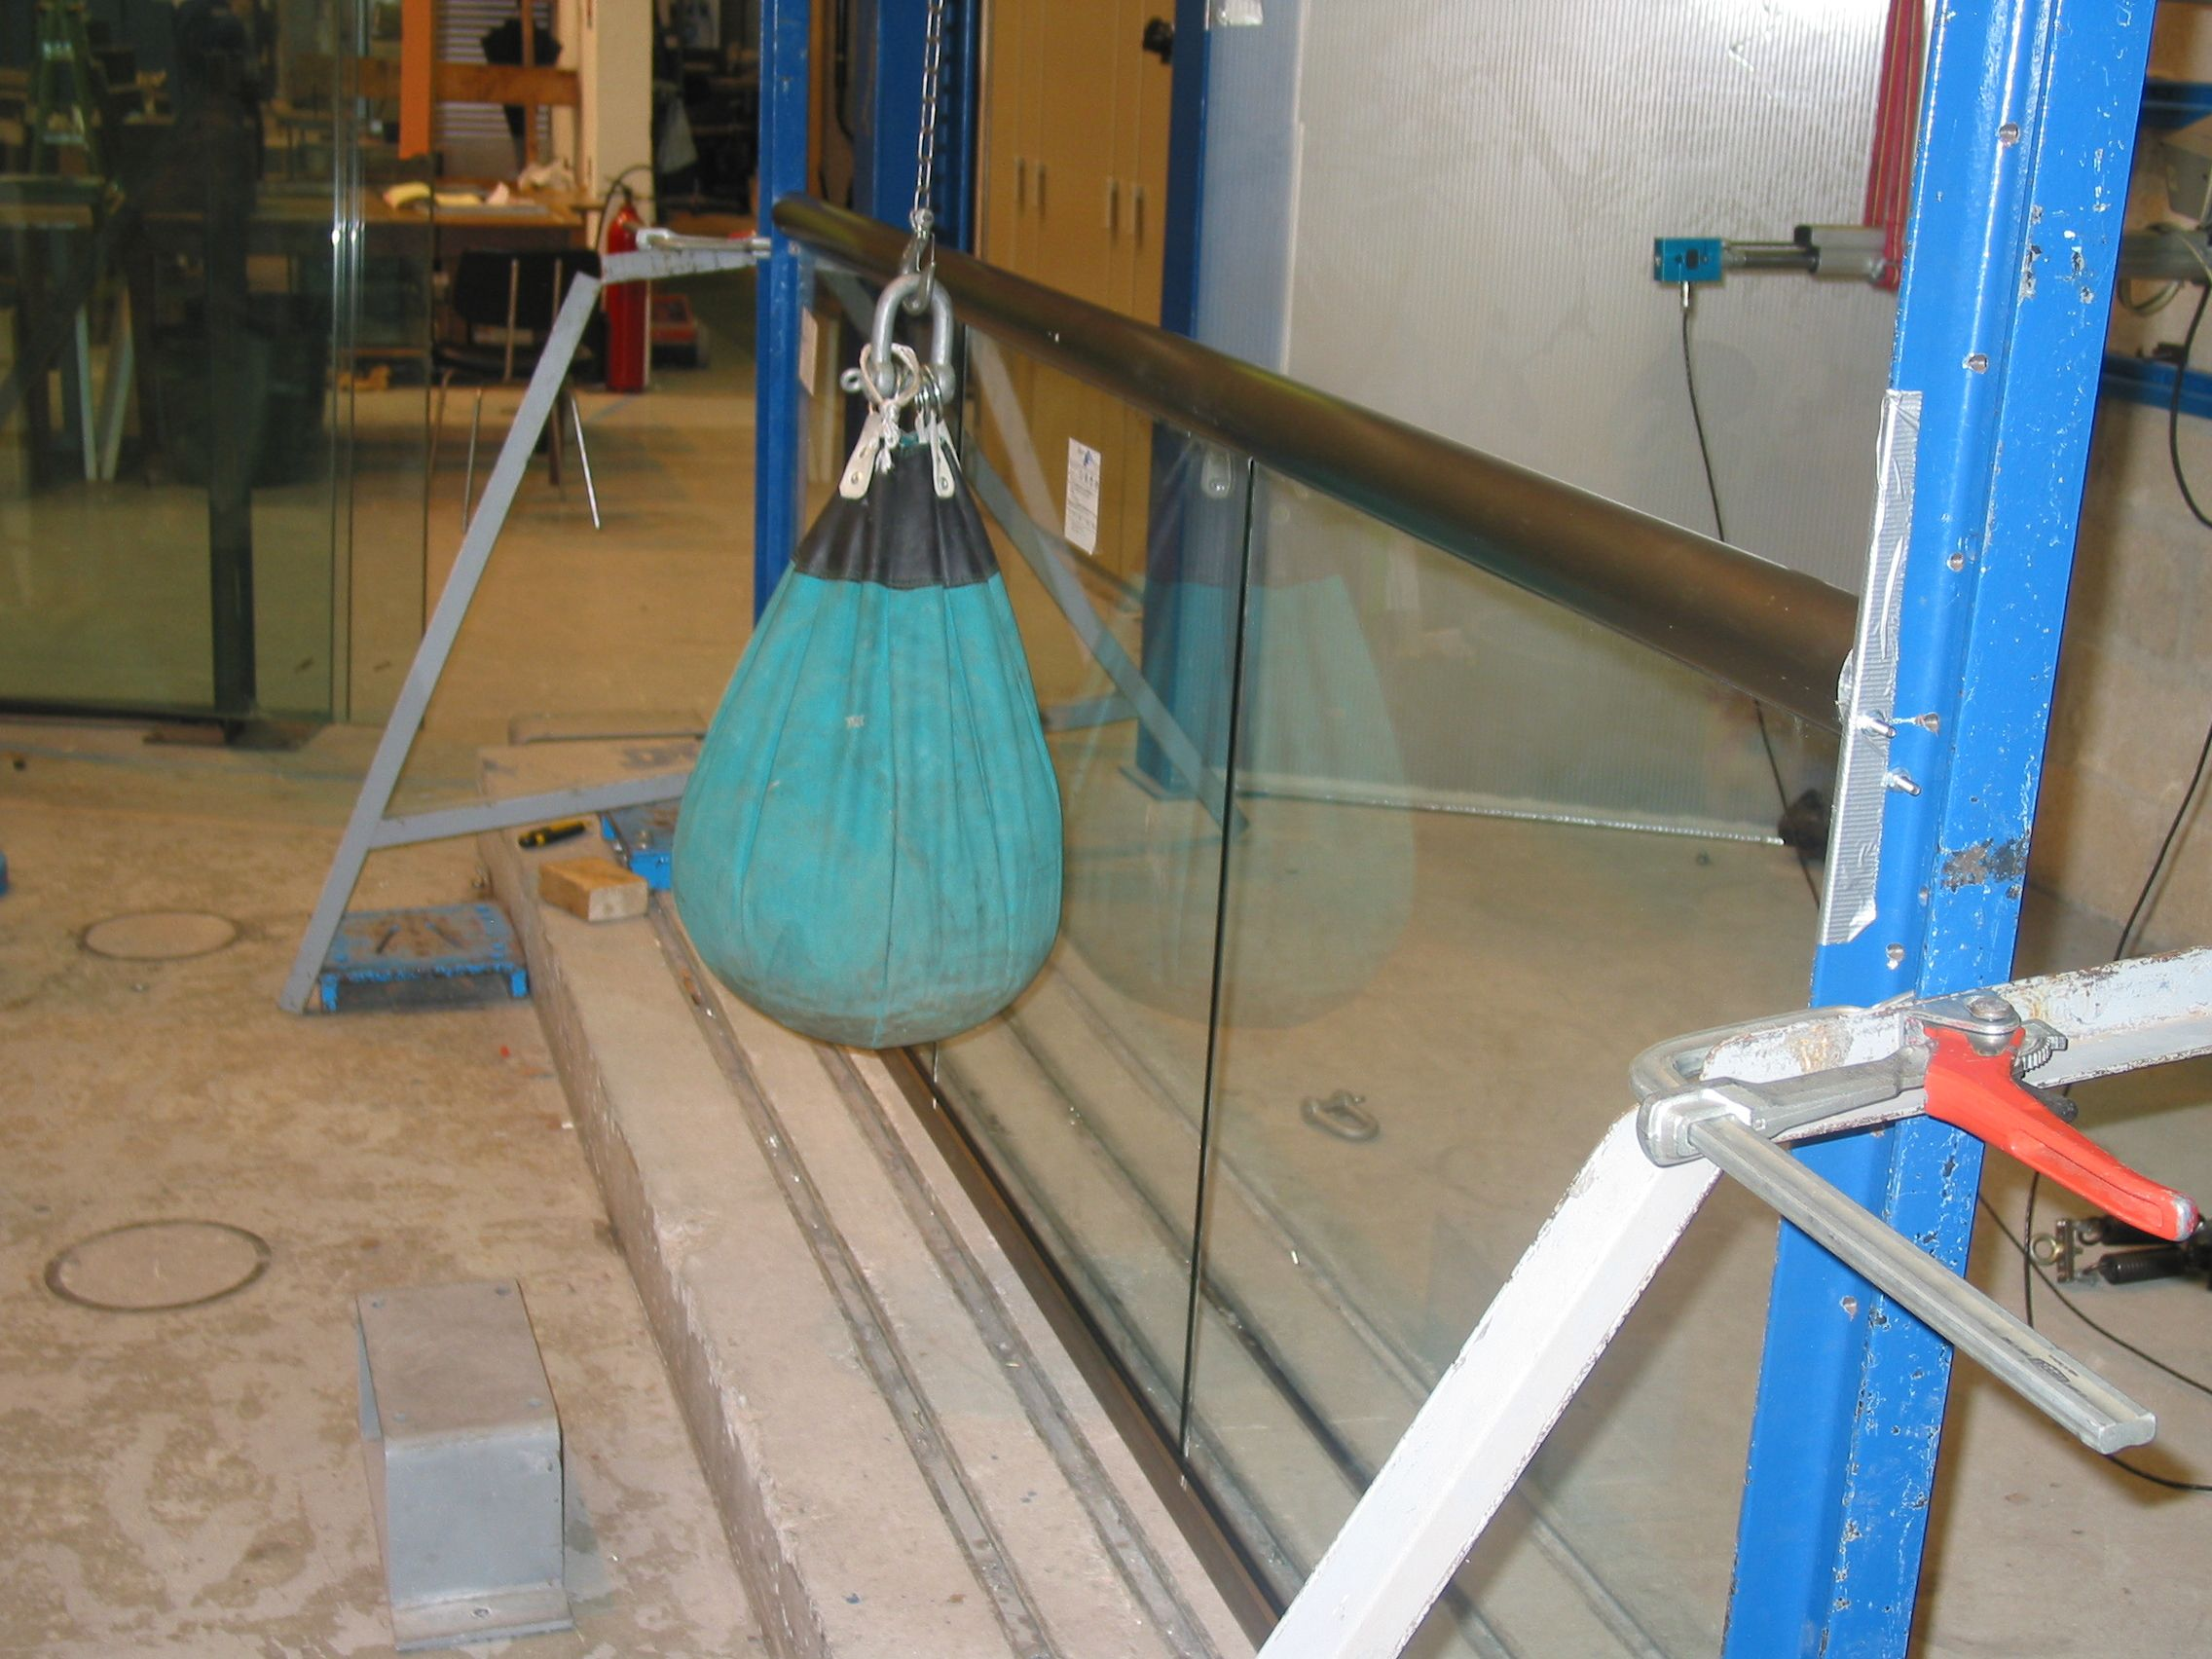 Inpact Testing on Glass and Balustrade